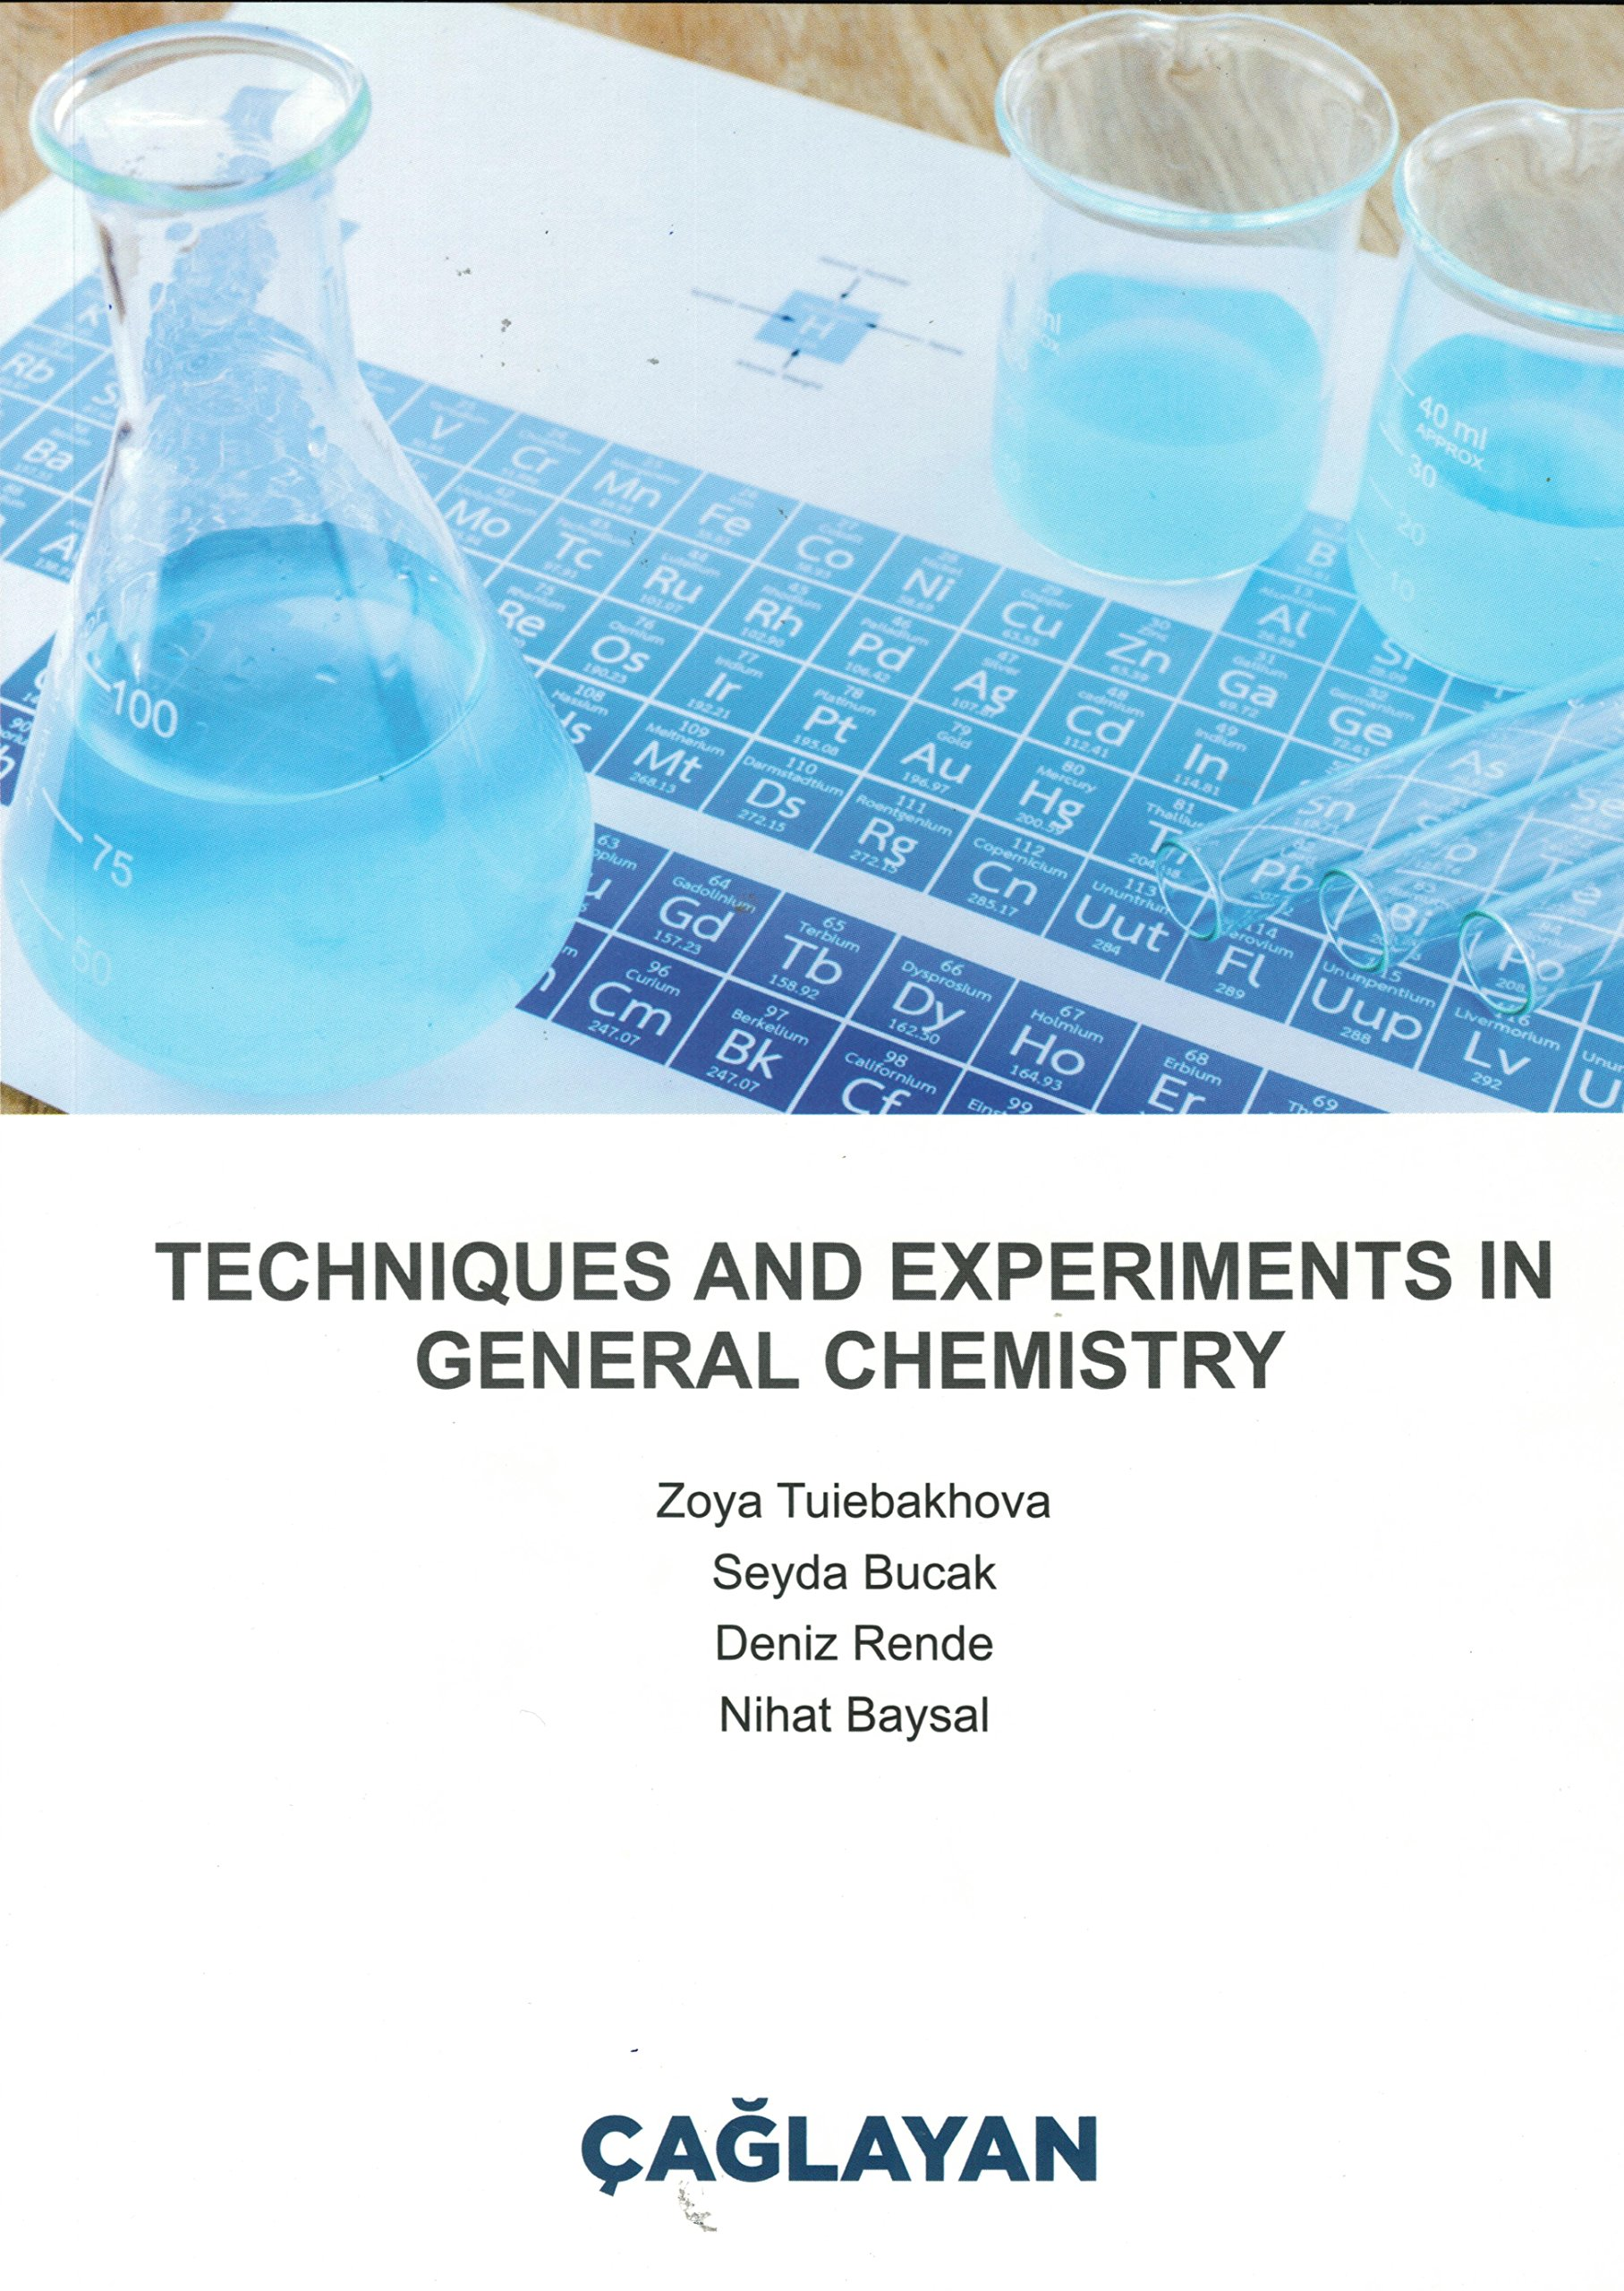 Techniques and experiments in general chemistry